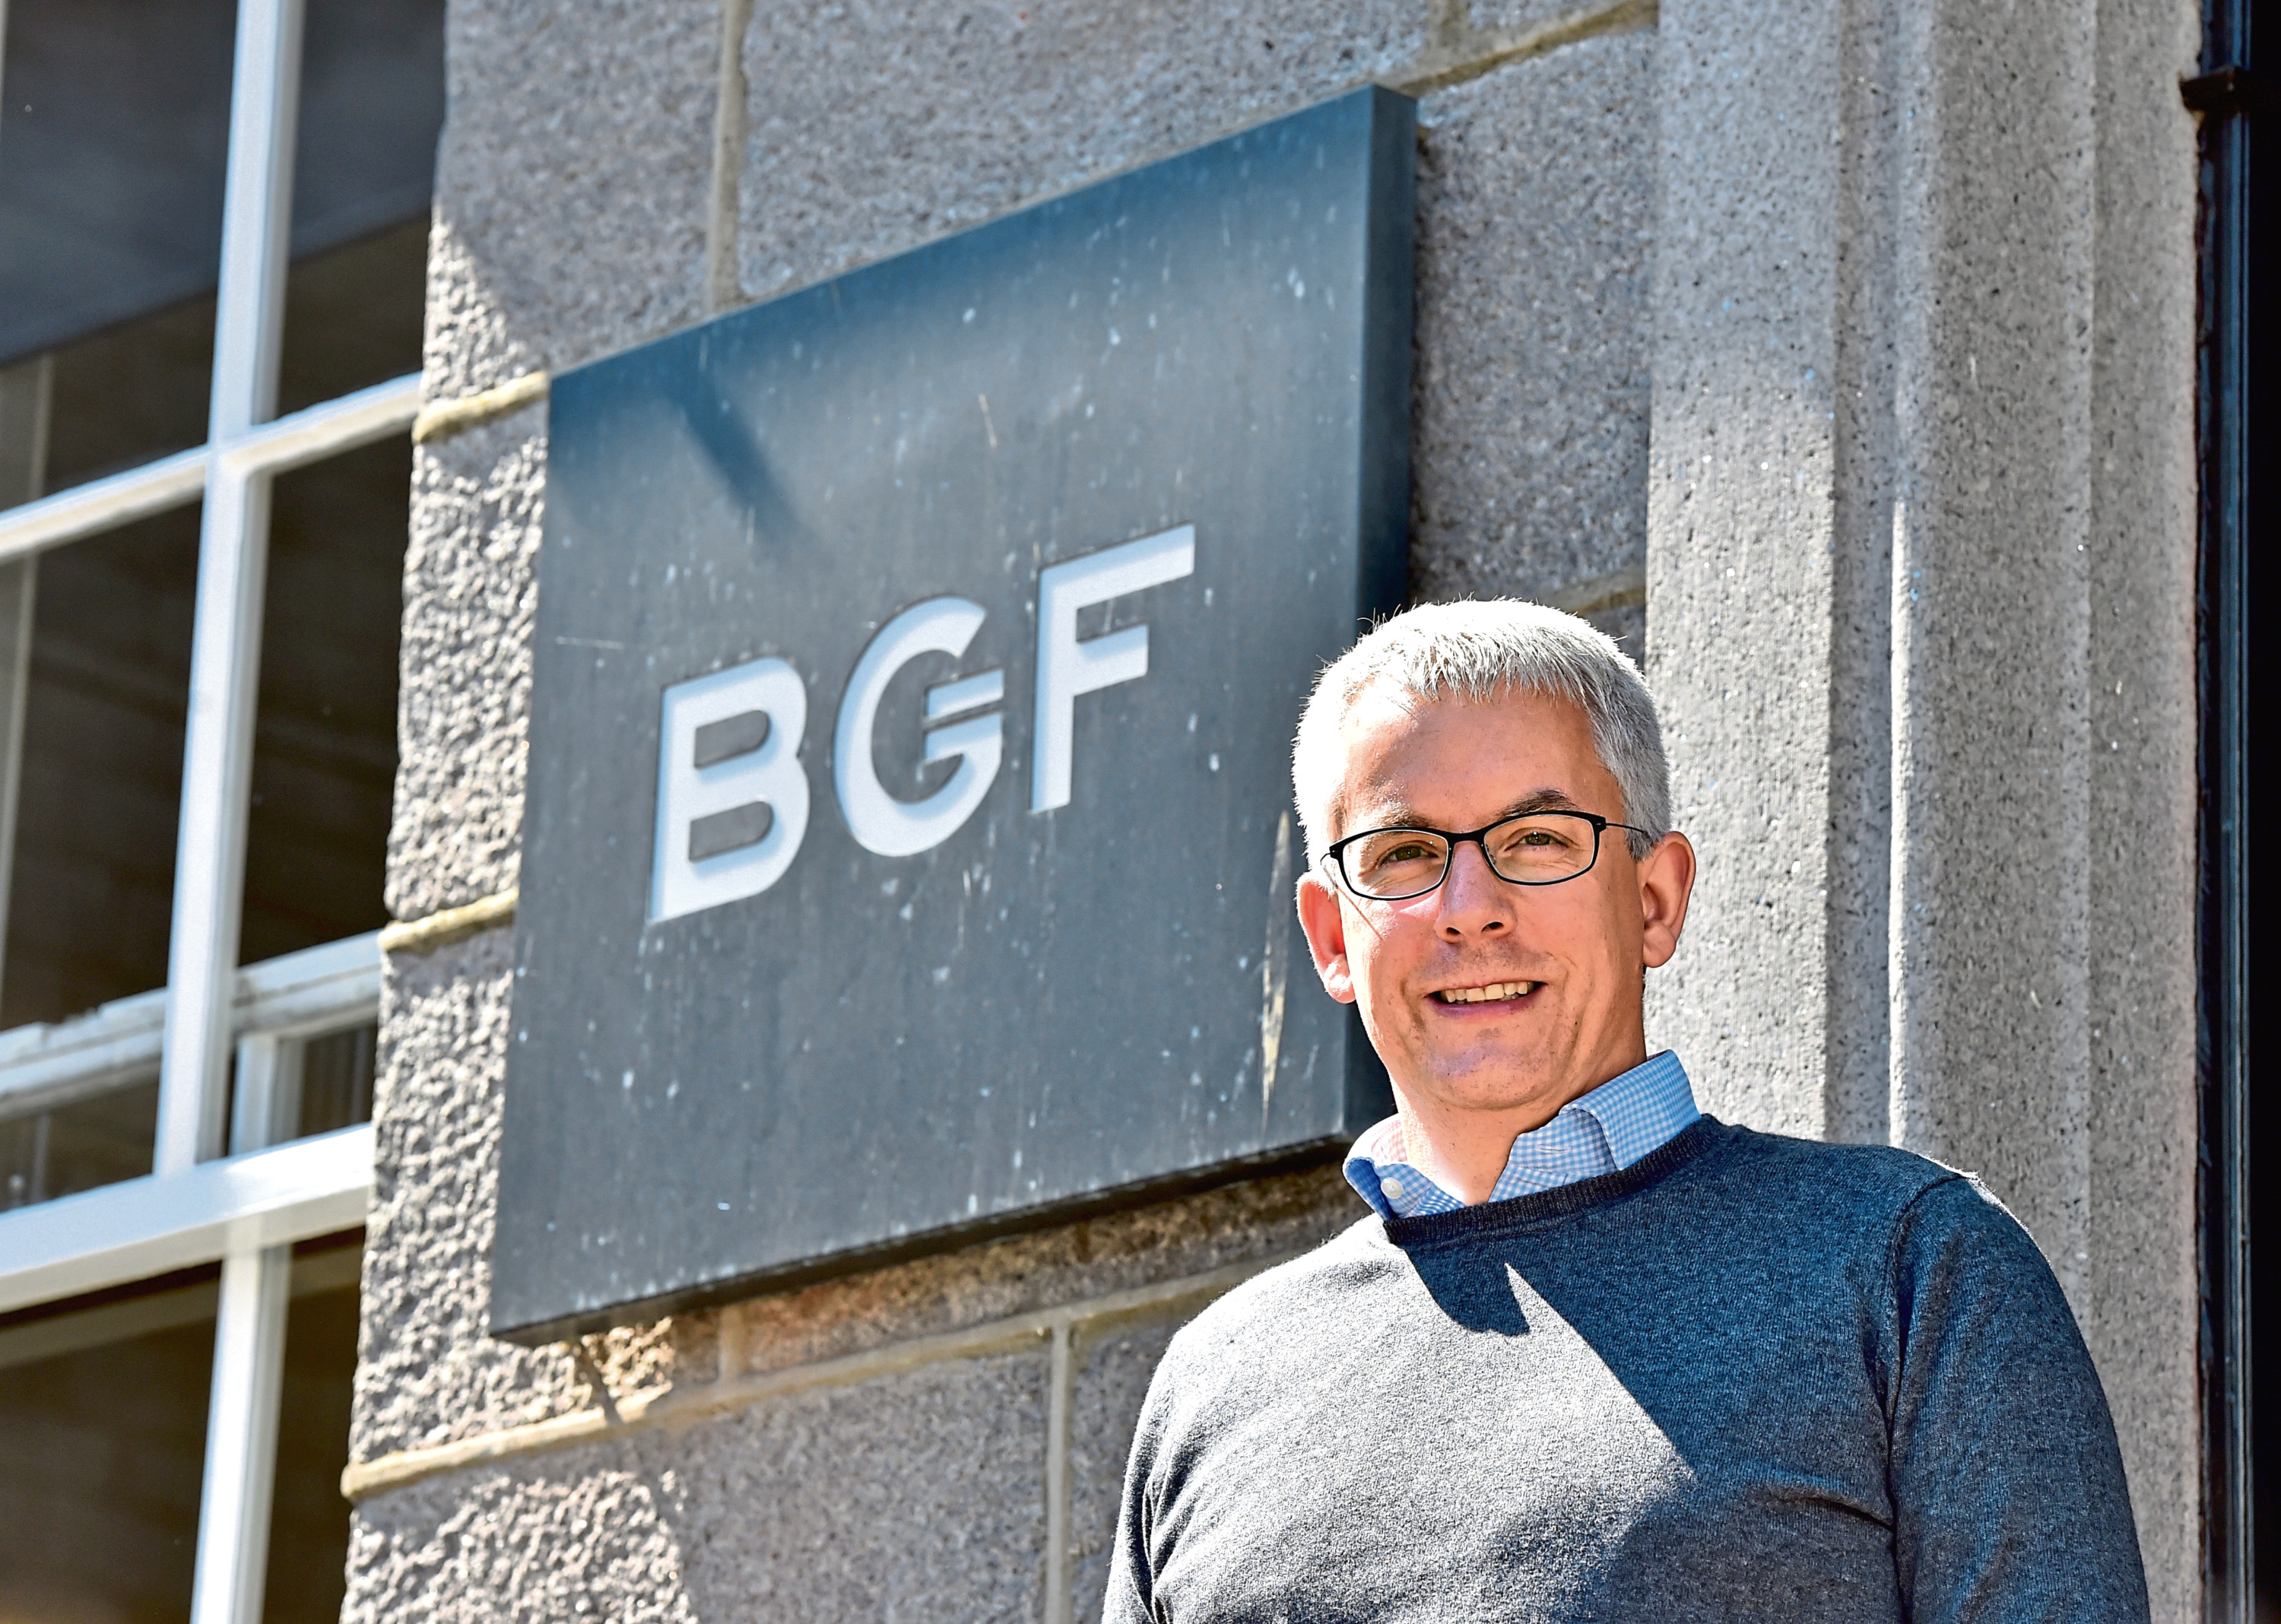 Business Growth Fund, Mike Sibson, Investment Director. 6th July 2018.  Business Growth Fund, Mike Sibson, Investment Director. 6th July 2018. Pictured is Mike Sibson, Investment Director.    Picture by Scott Baxter    06/07/2018